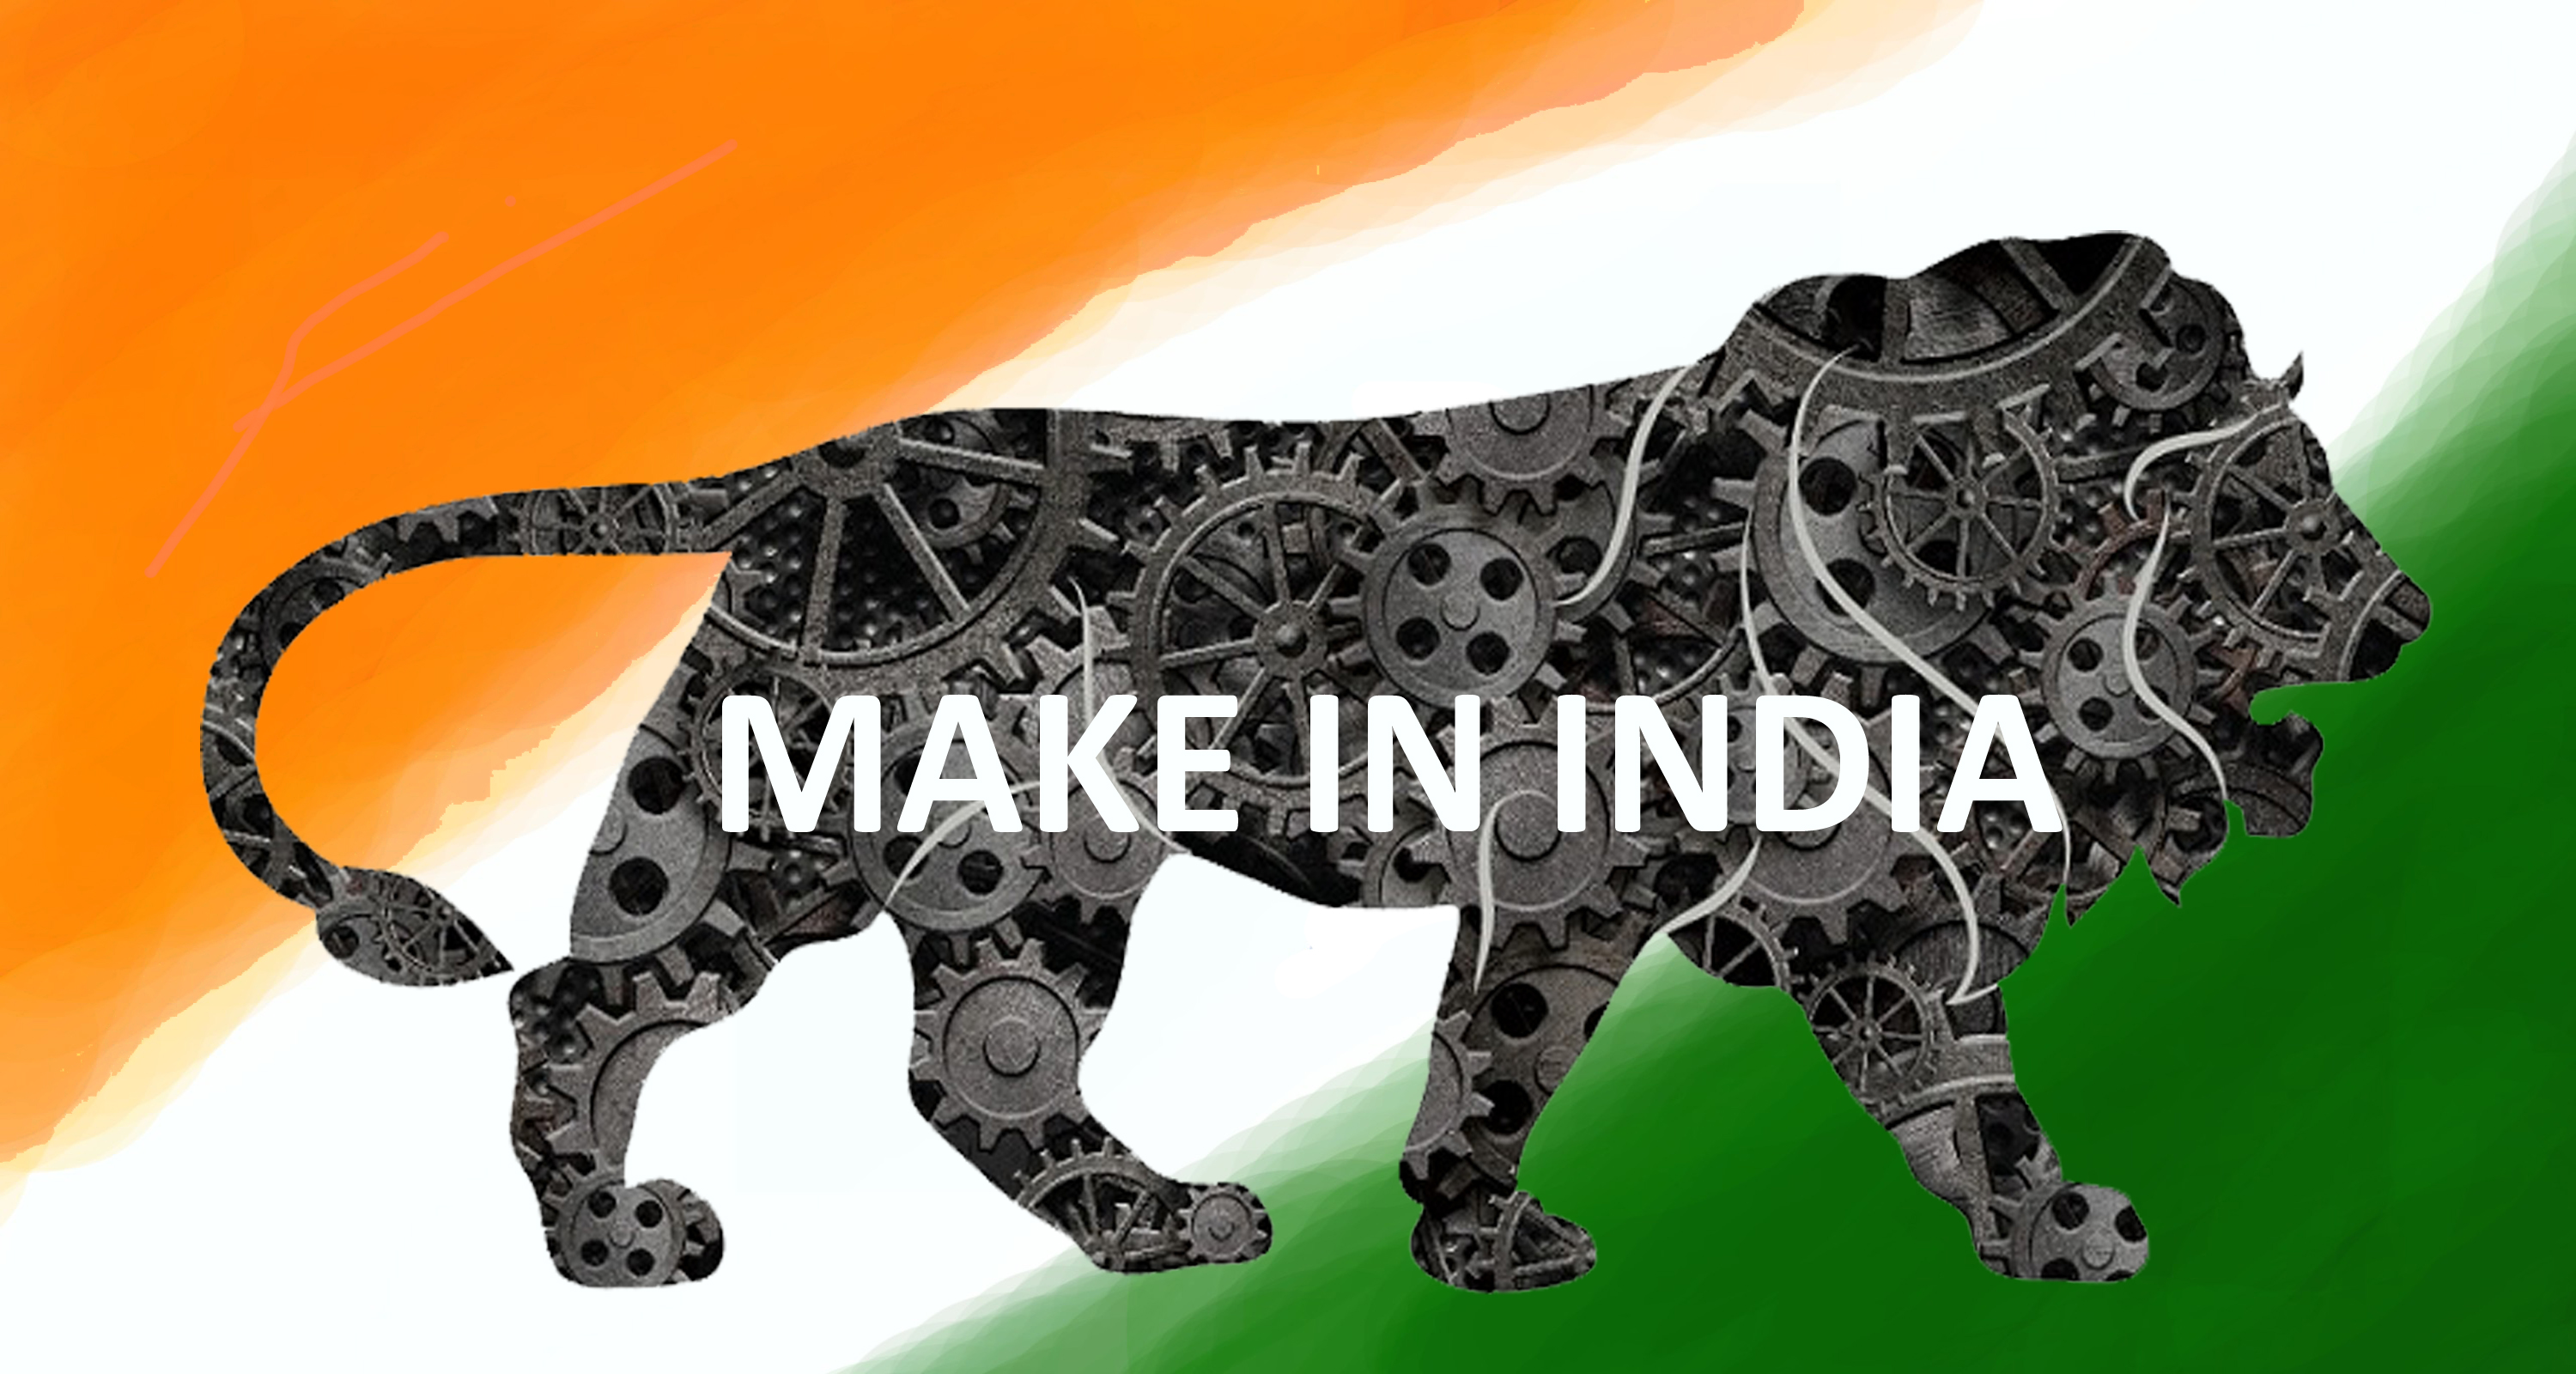 Need for Policy Change to Support the Domestic Insulator Industry In Line with the Make in India Initiative